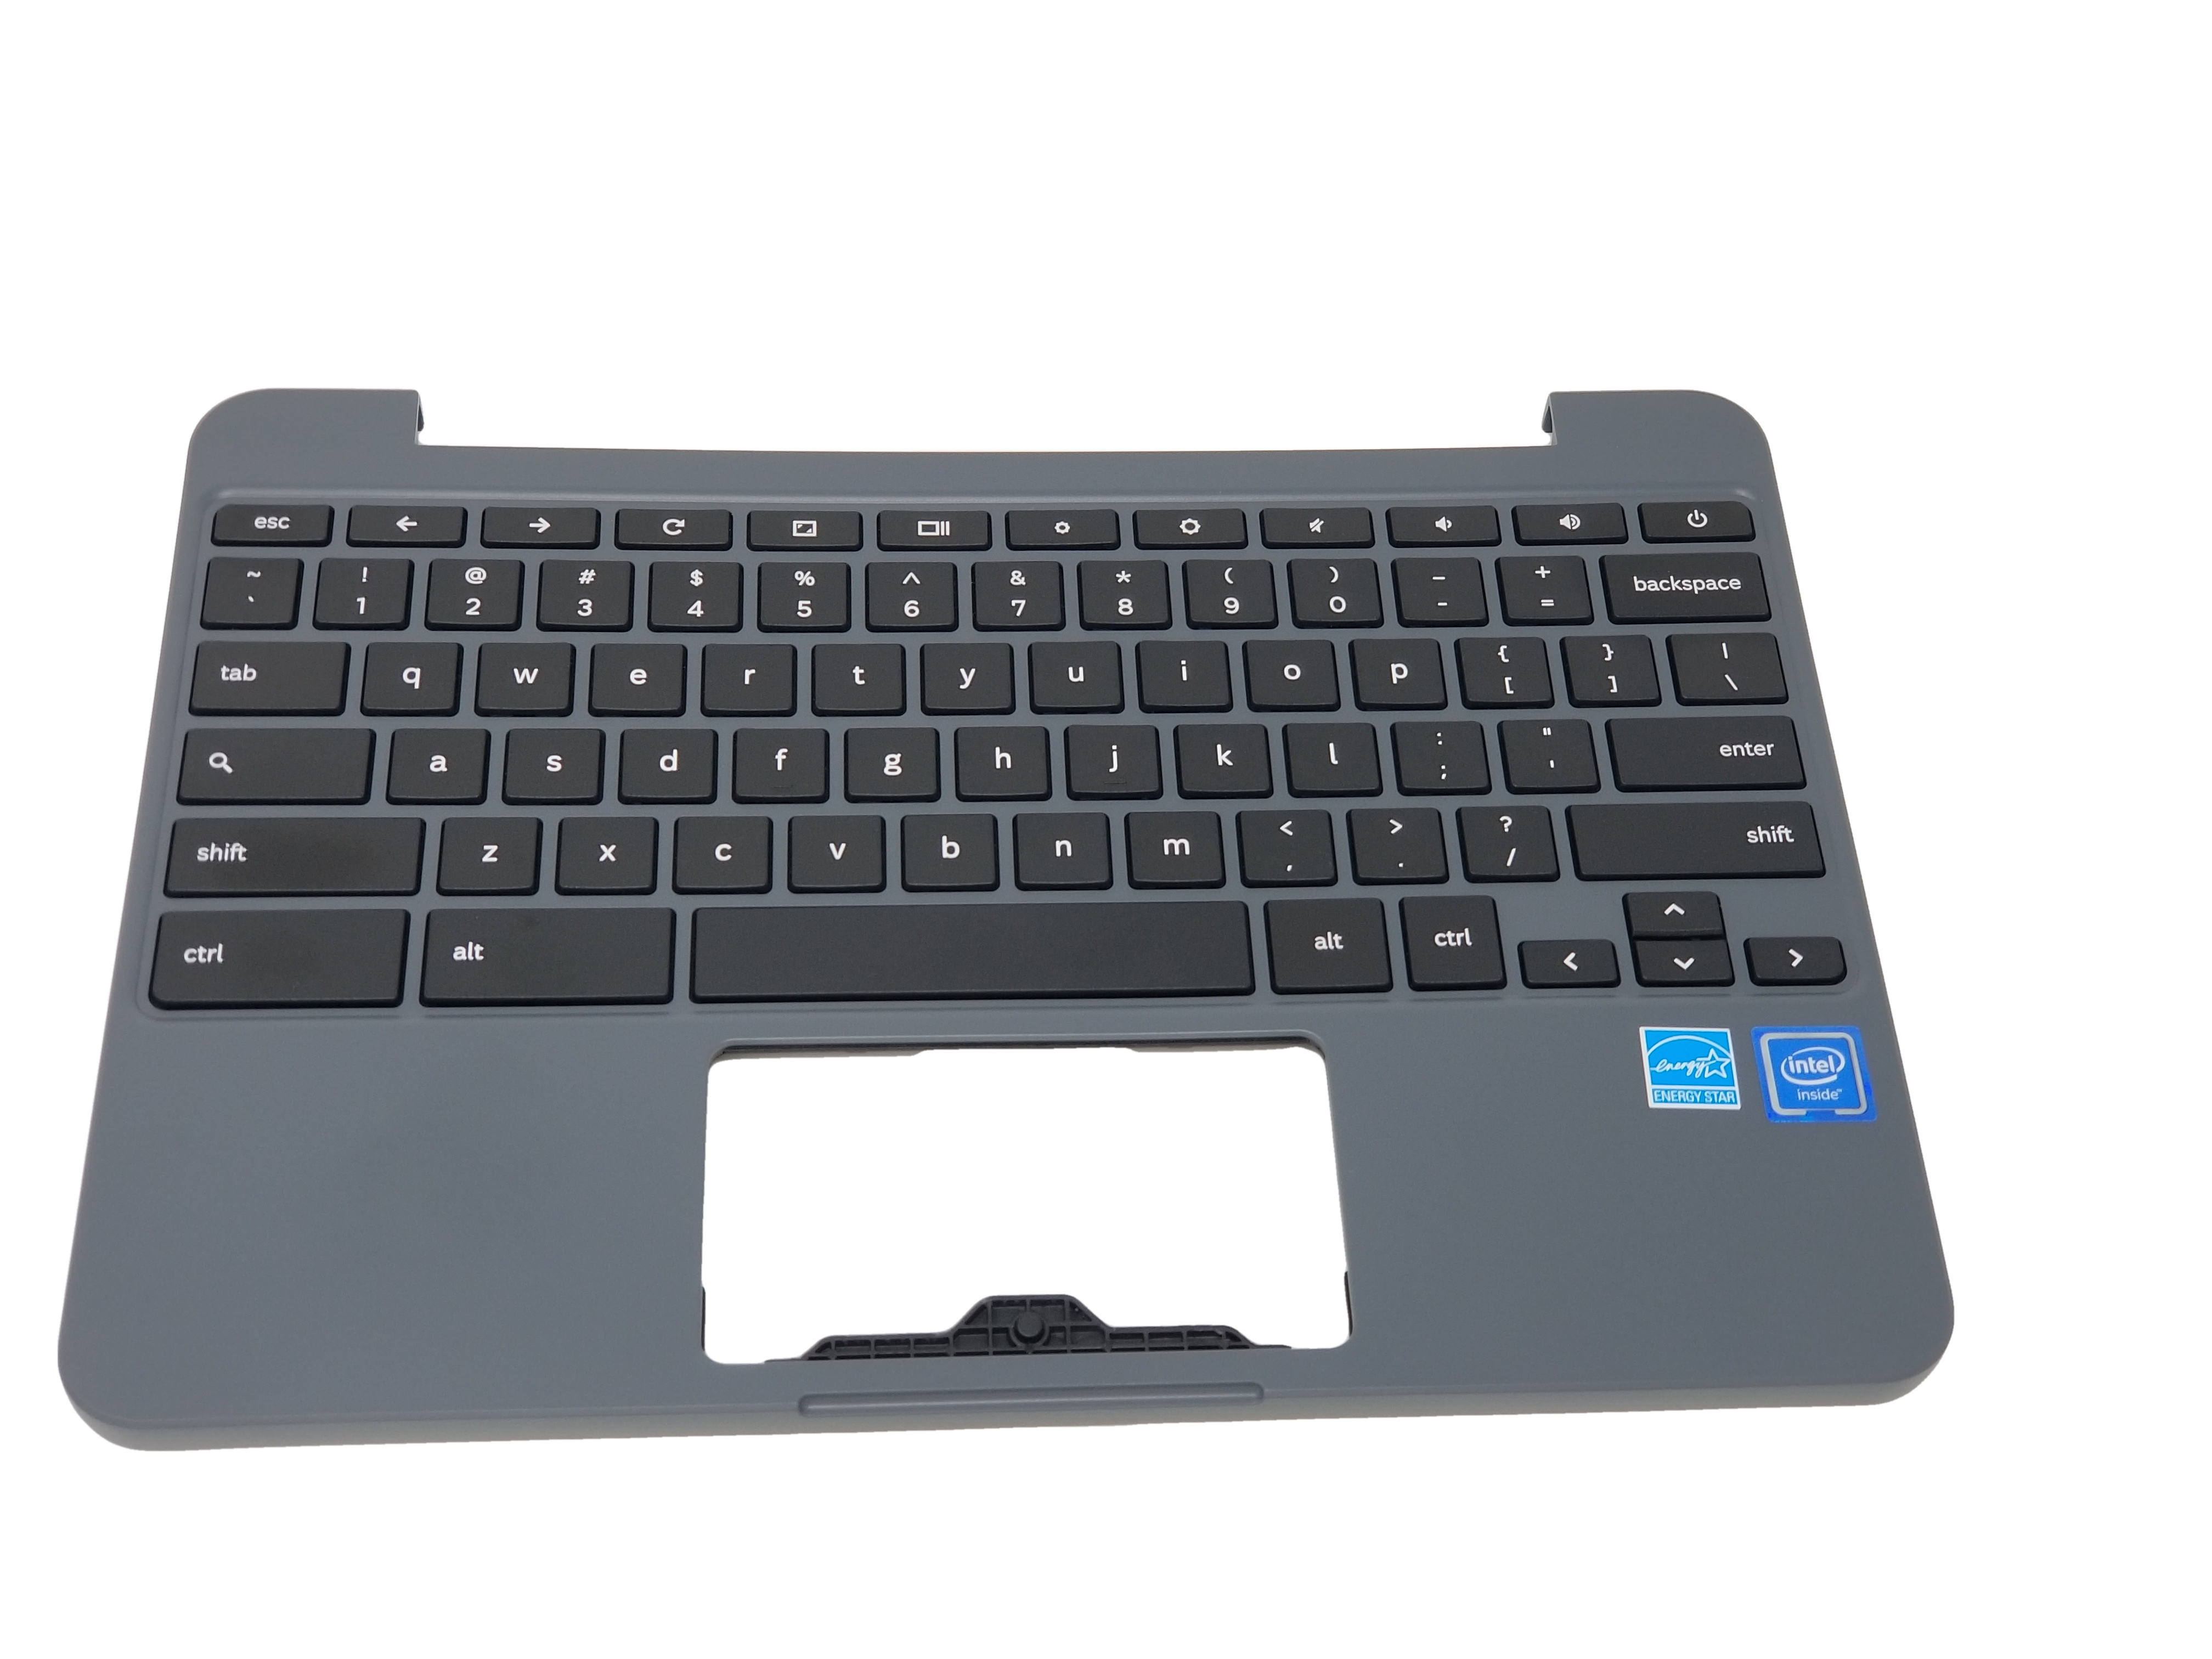 Samsung Chromebook 11 XE501C13 Palmrest Keyboard Assembly - BA98-01575A